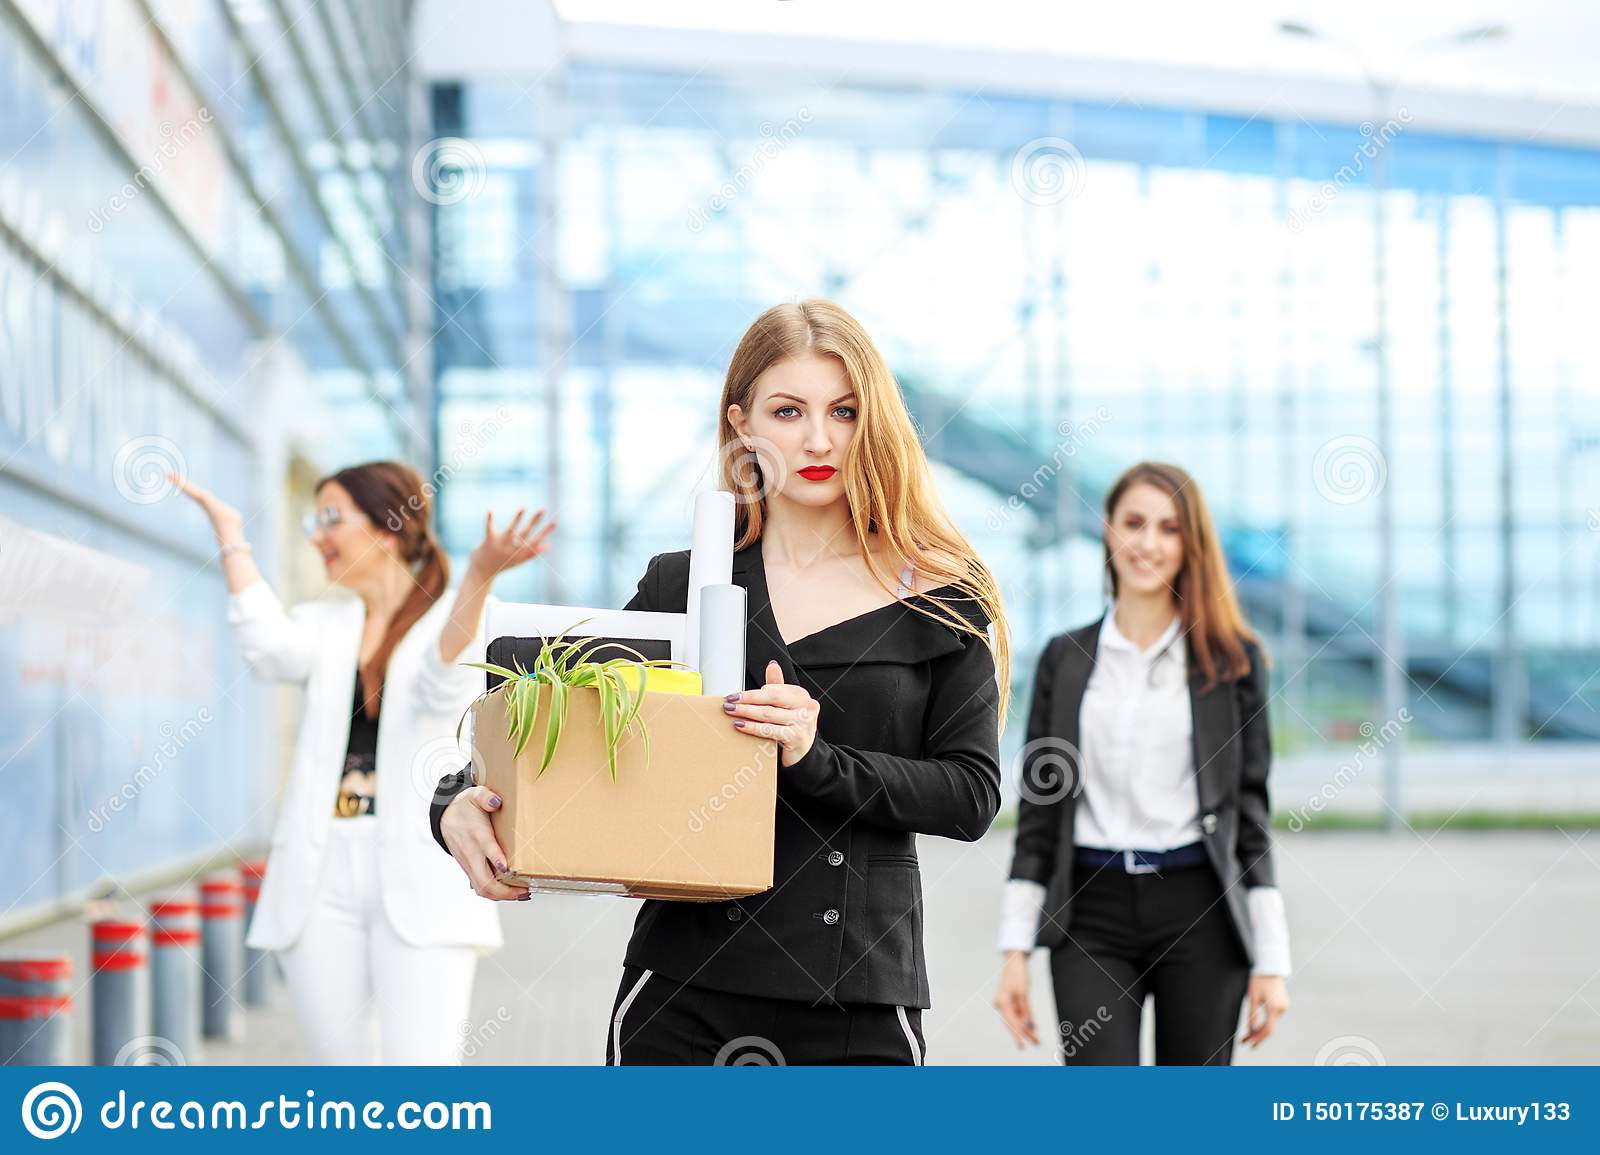 The young woman was fired from the corporation. The end of a career. Concept for business, unemployment, labor exchange and